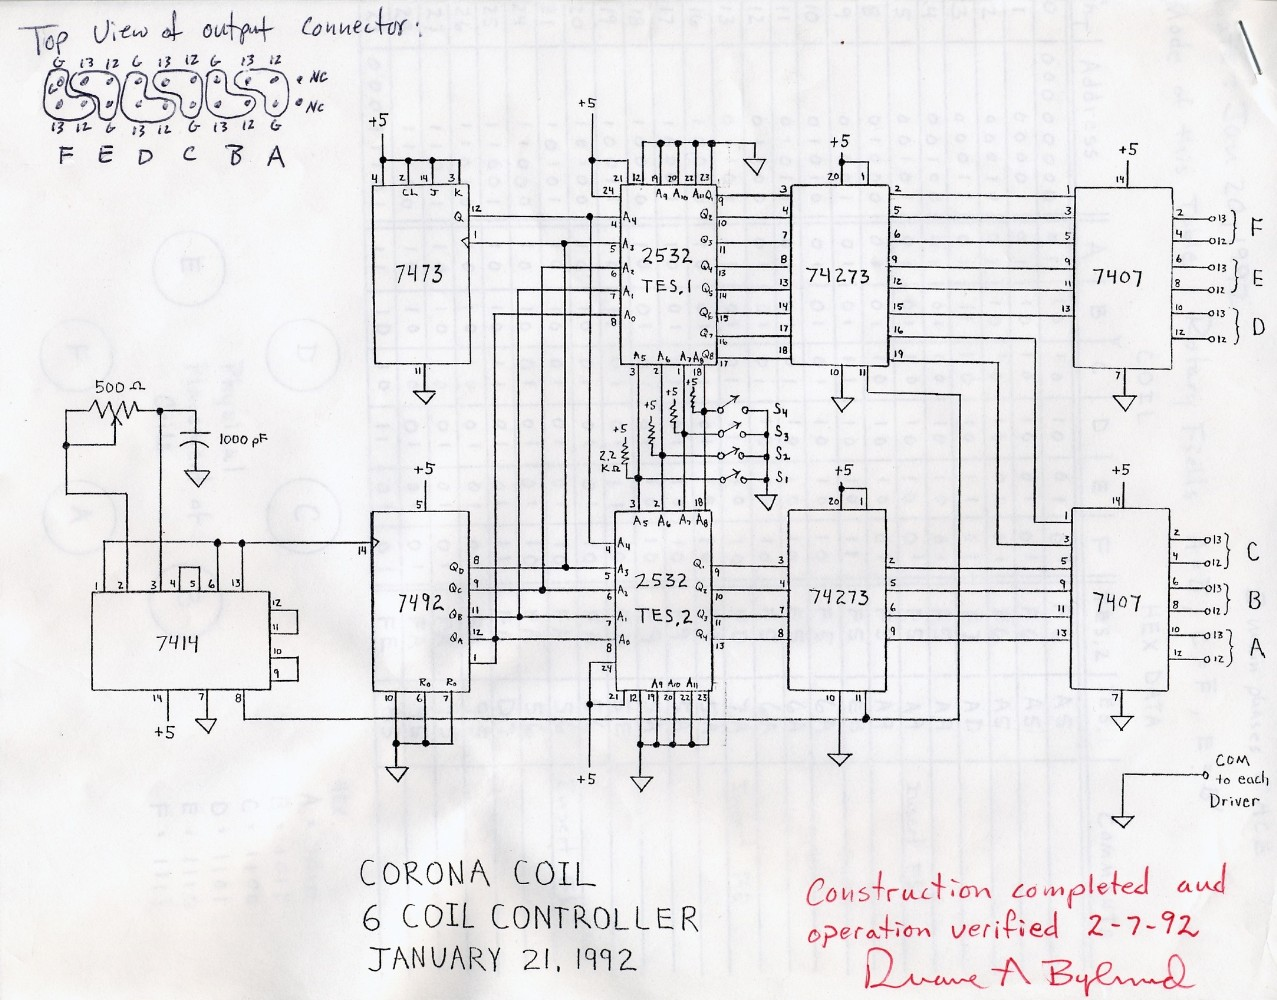 1992 3-phase Tesla coil controller schematic diagram